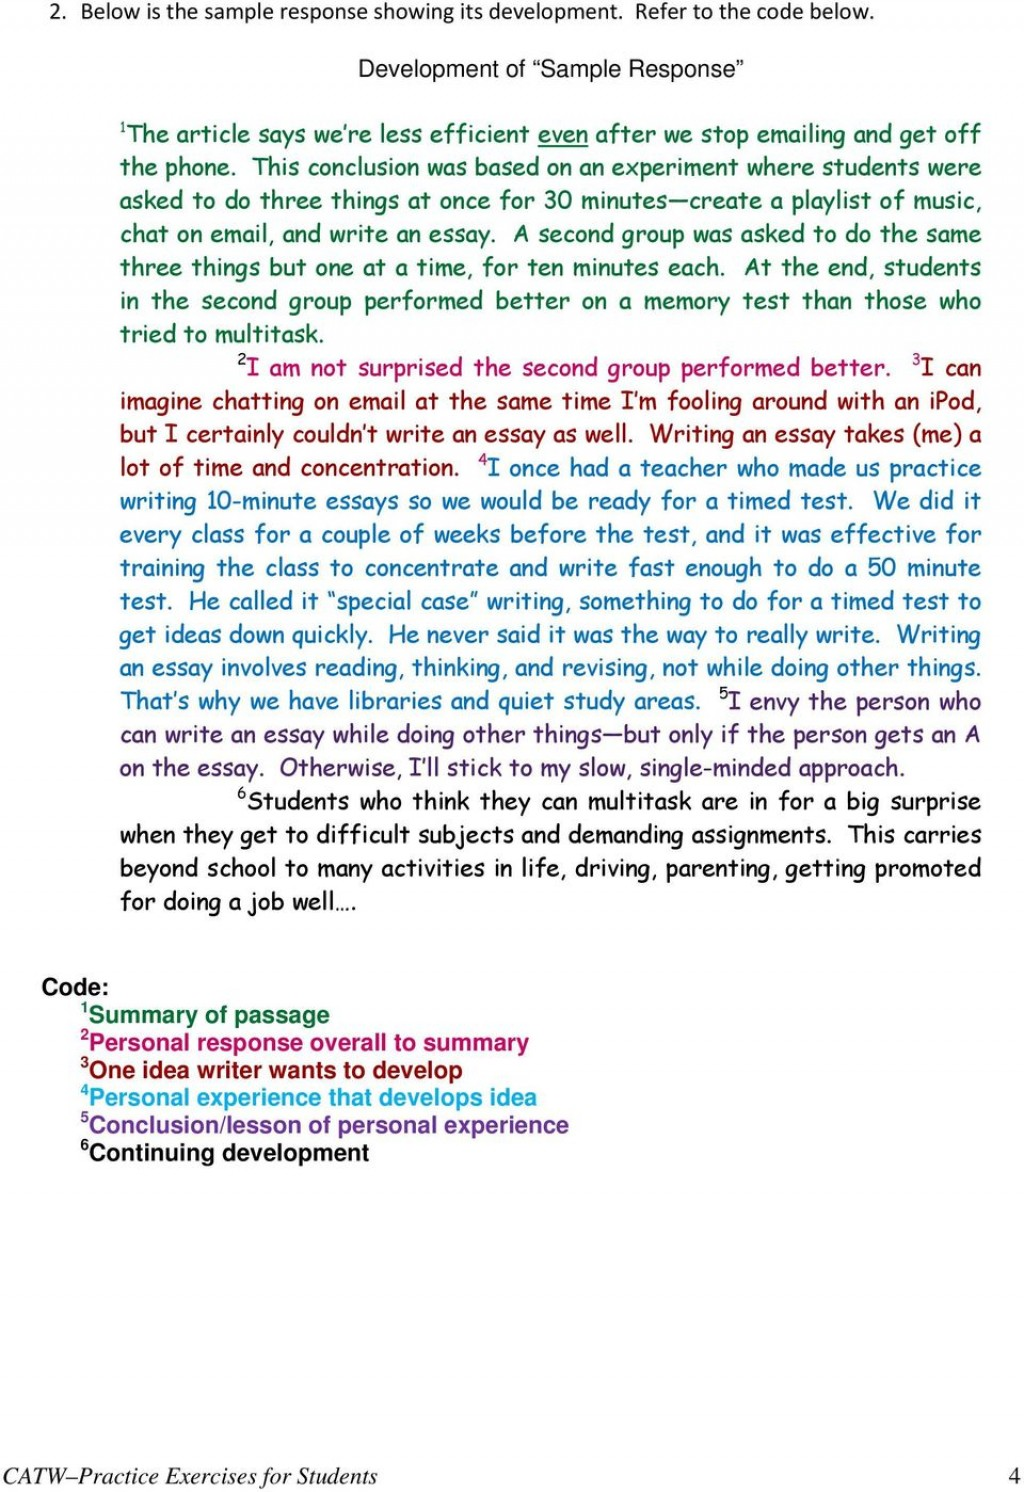 001 Essay Example Catw Samples Essays Different Types Of Examples Stunning Large